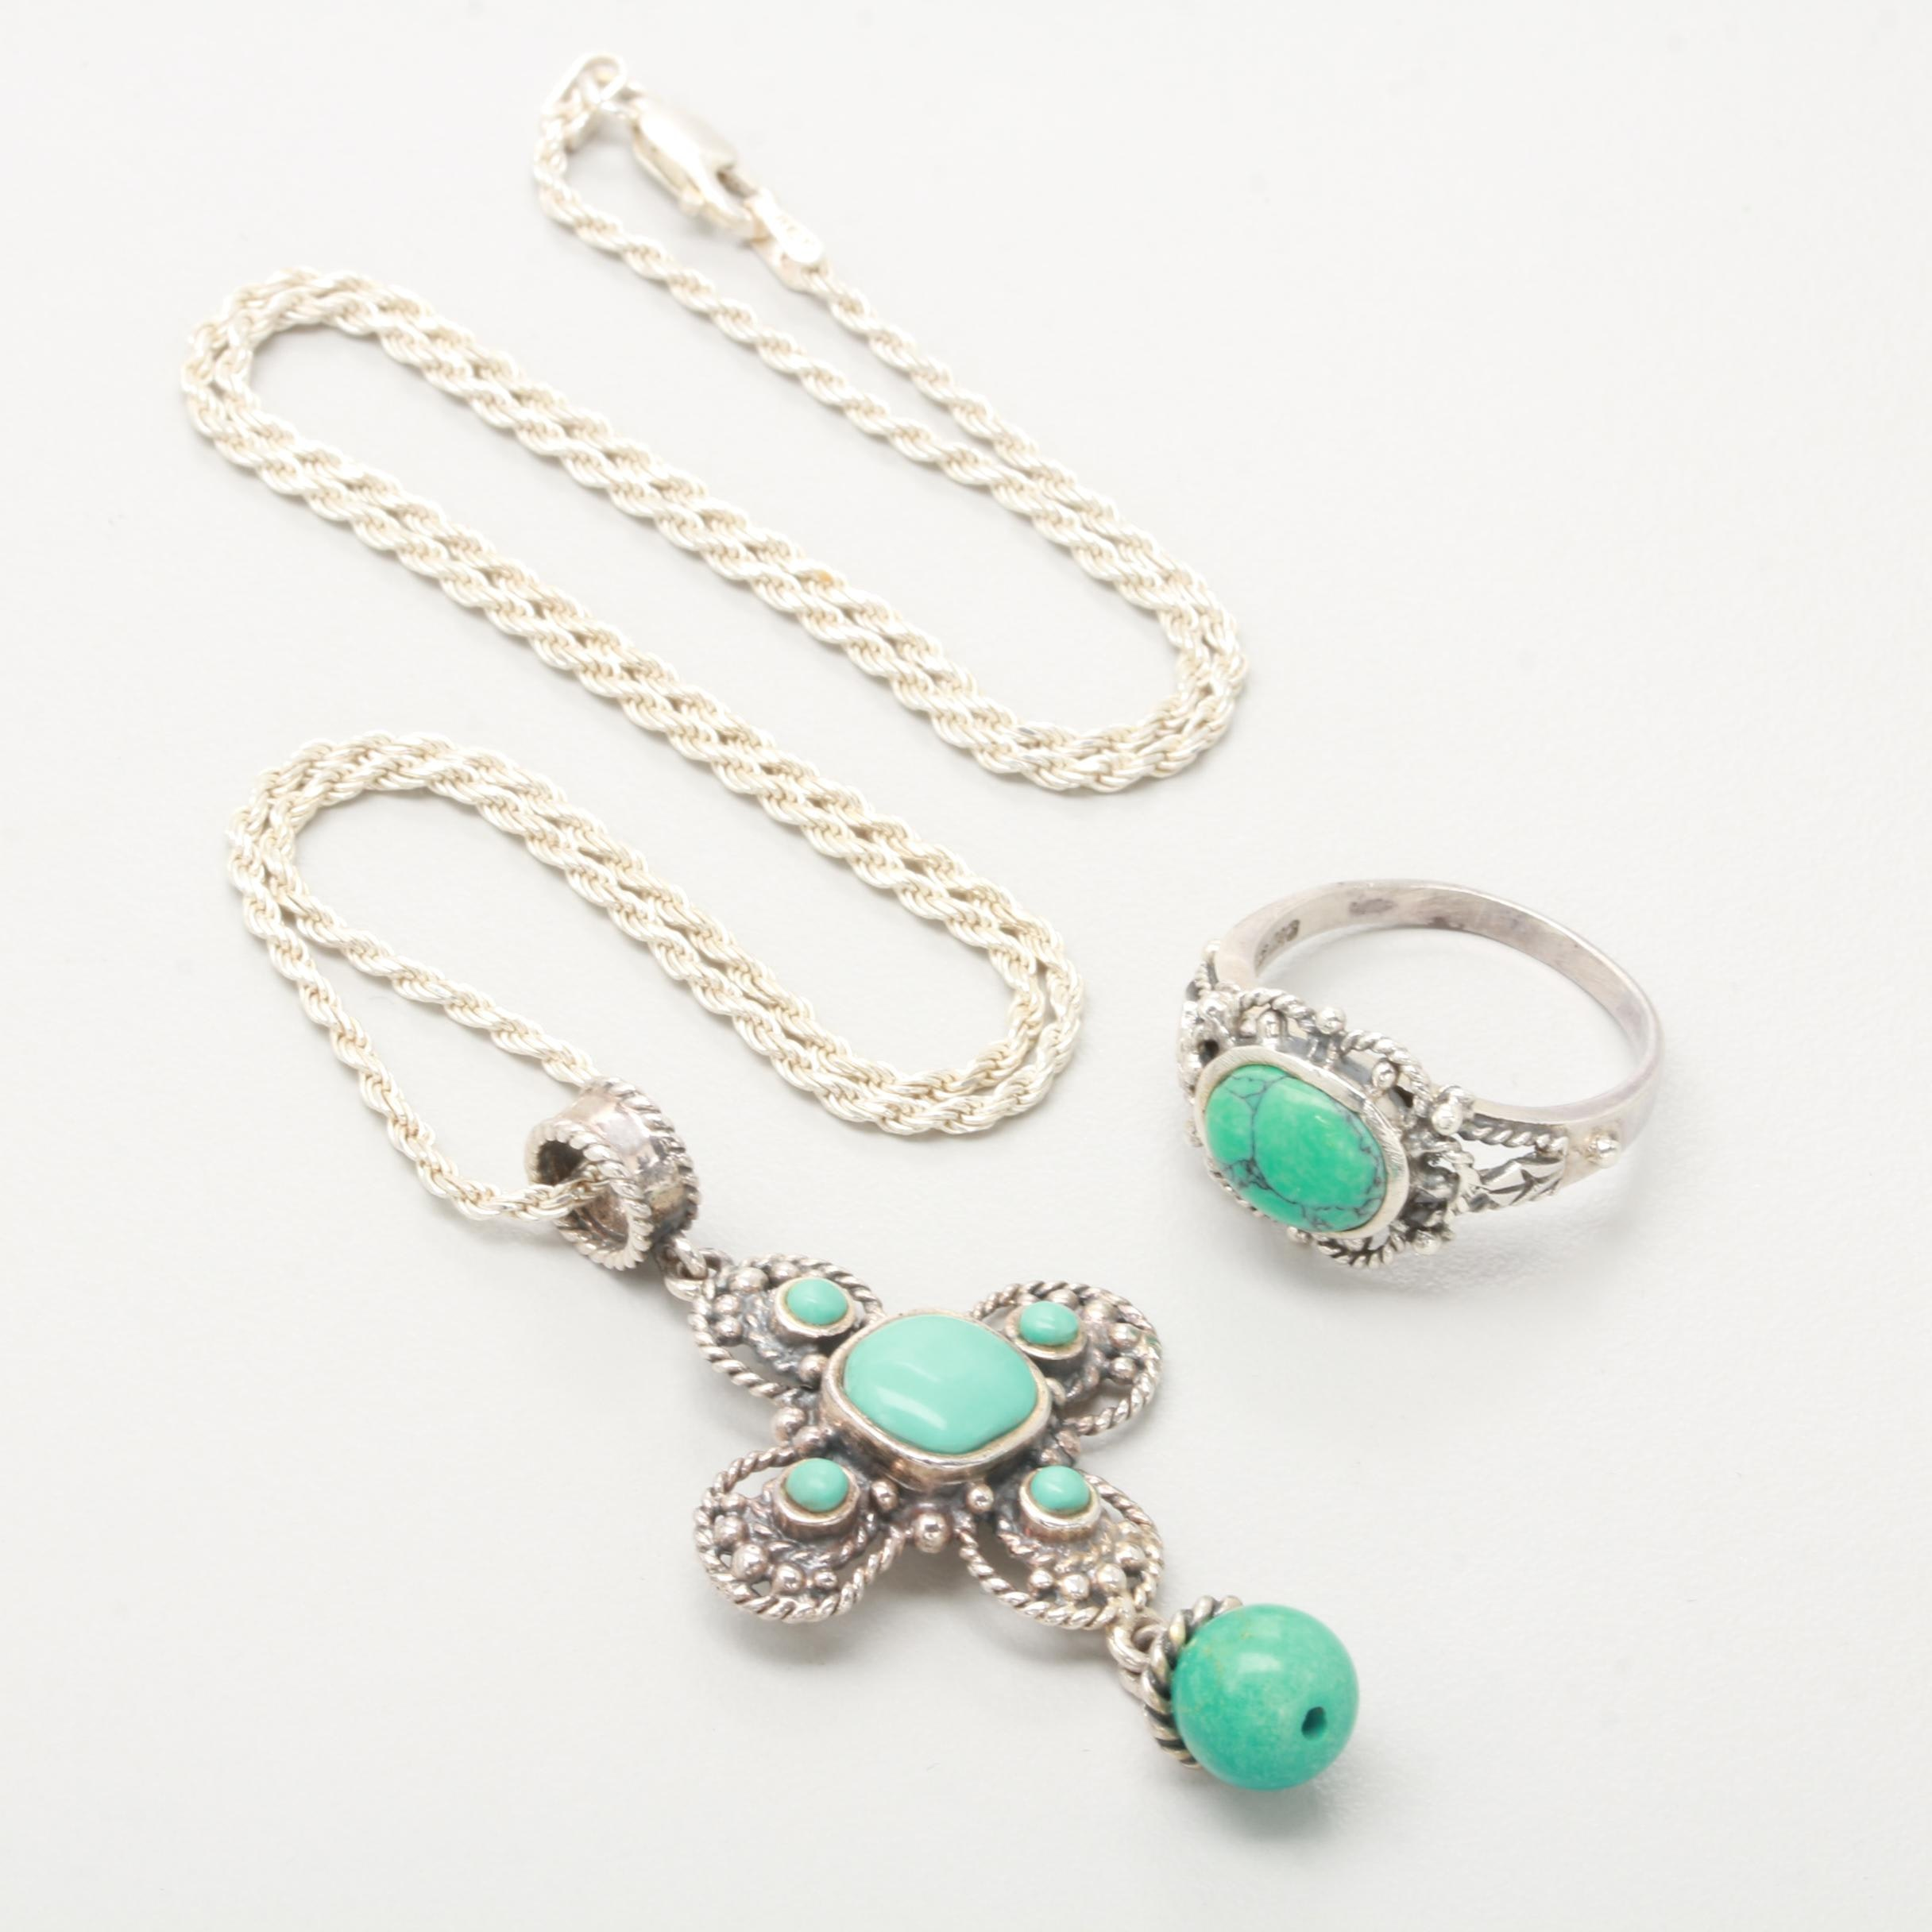 Sterling Silver Jewelry Selection Including Reconstructed Turquoise